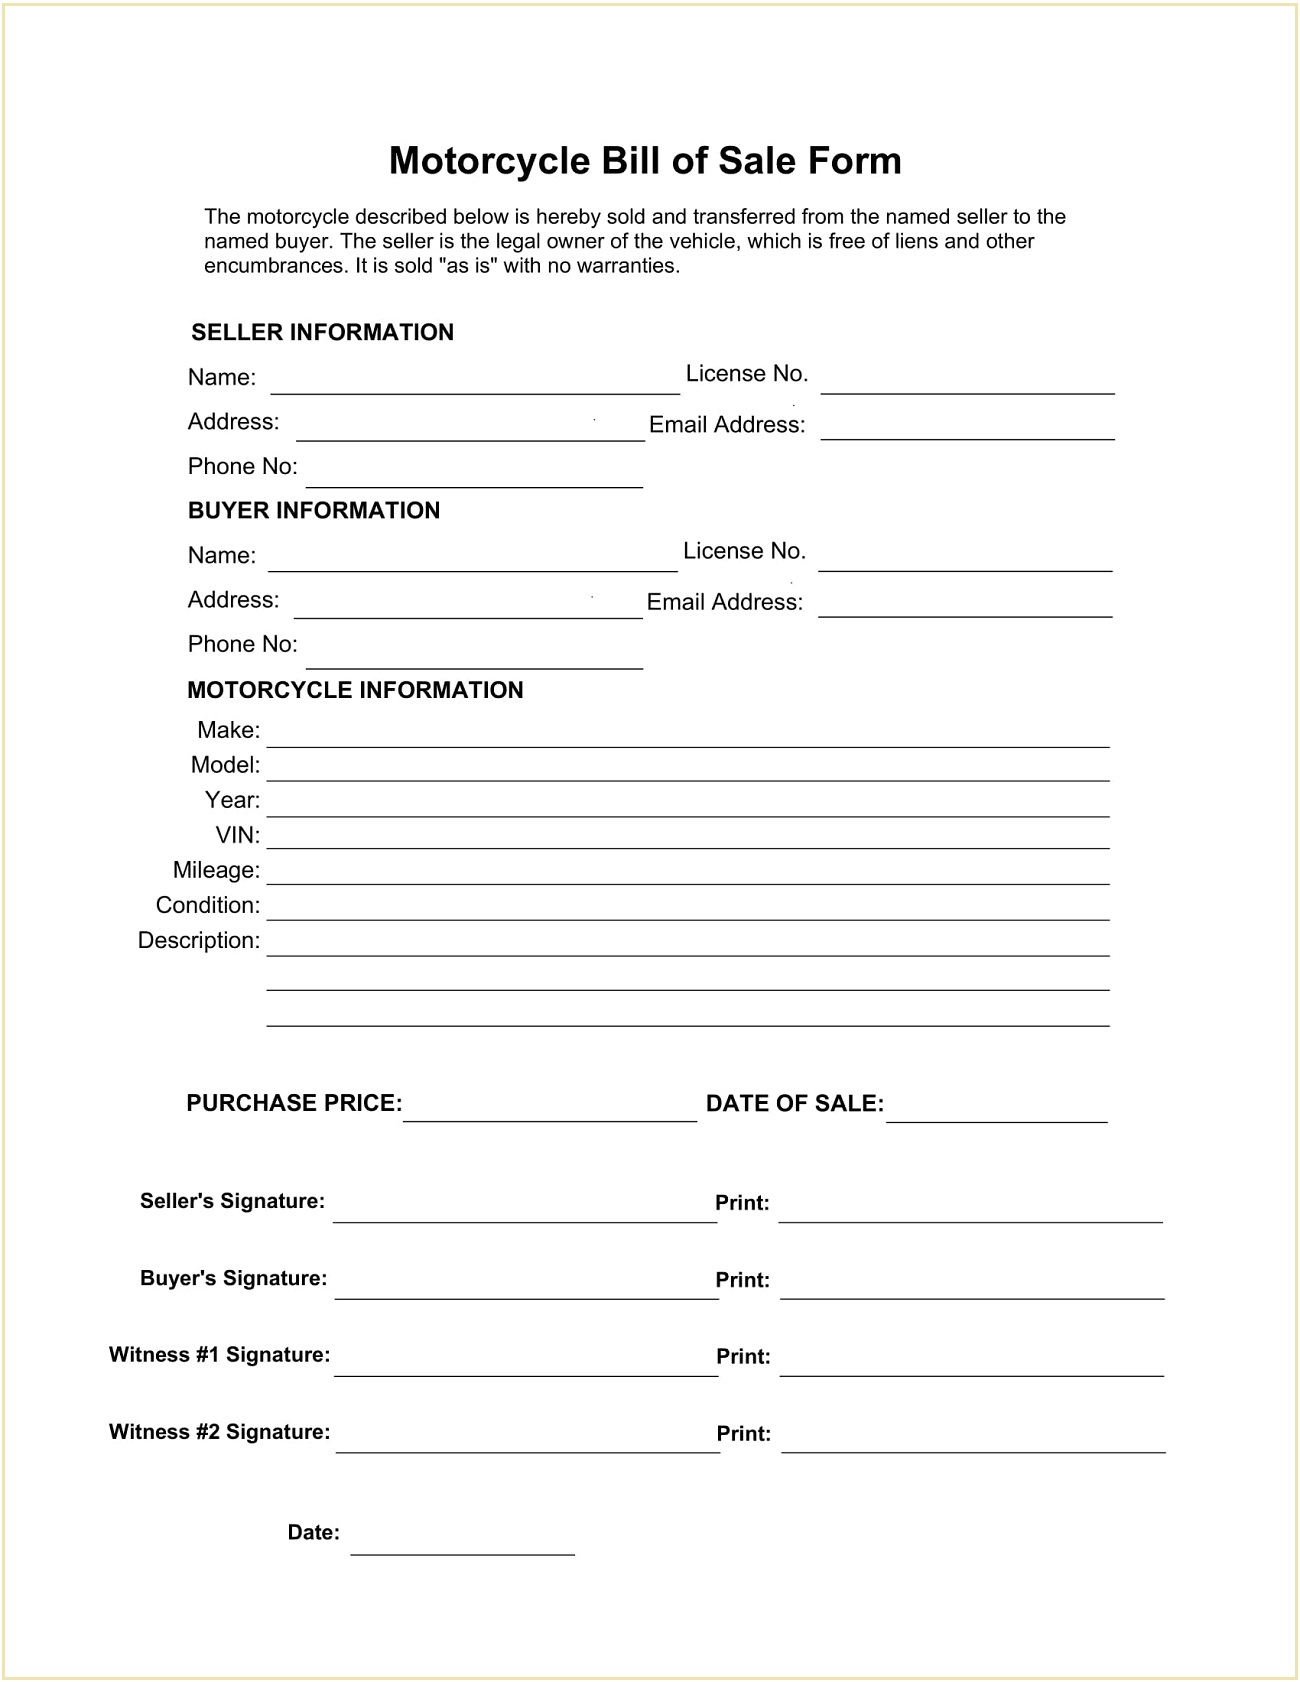 Motorcycle Bill of Sale Form Template PDF